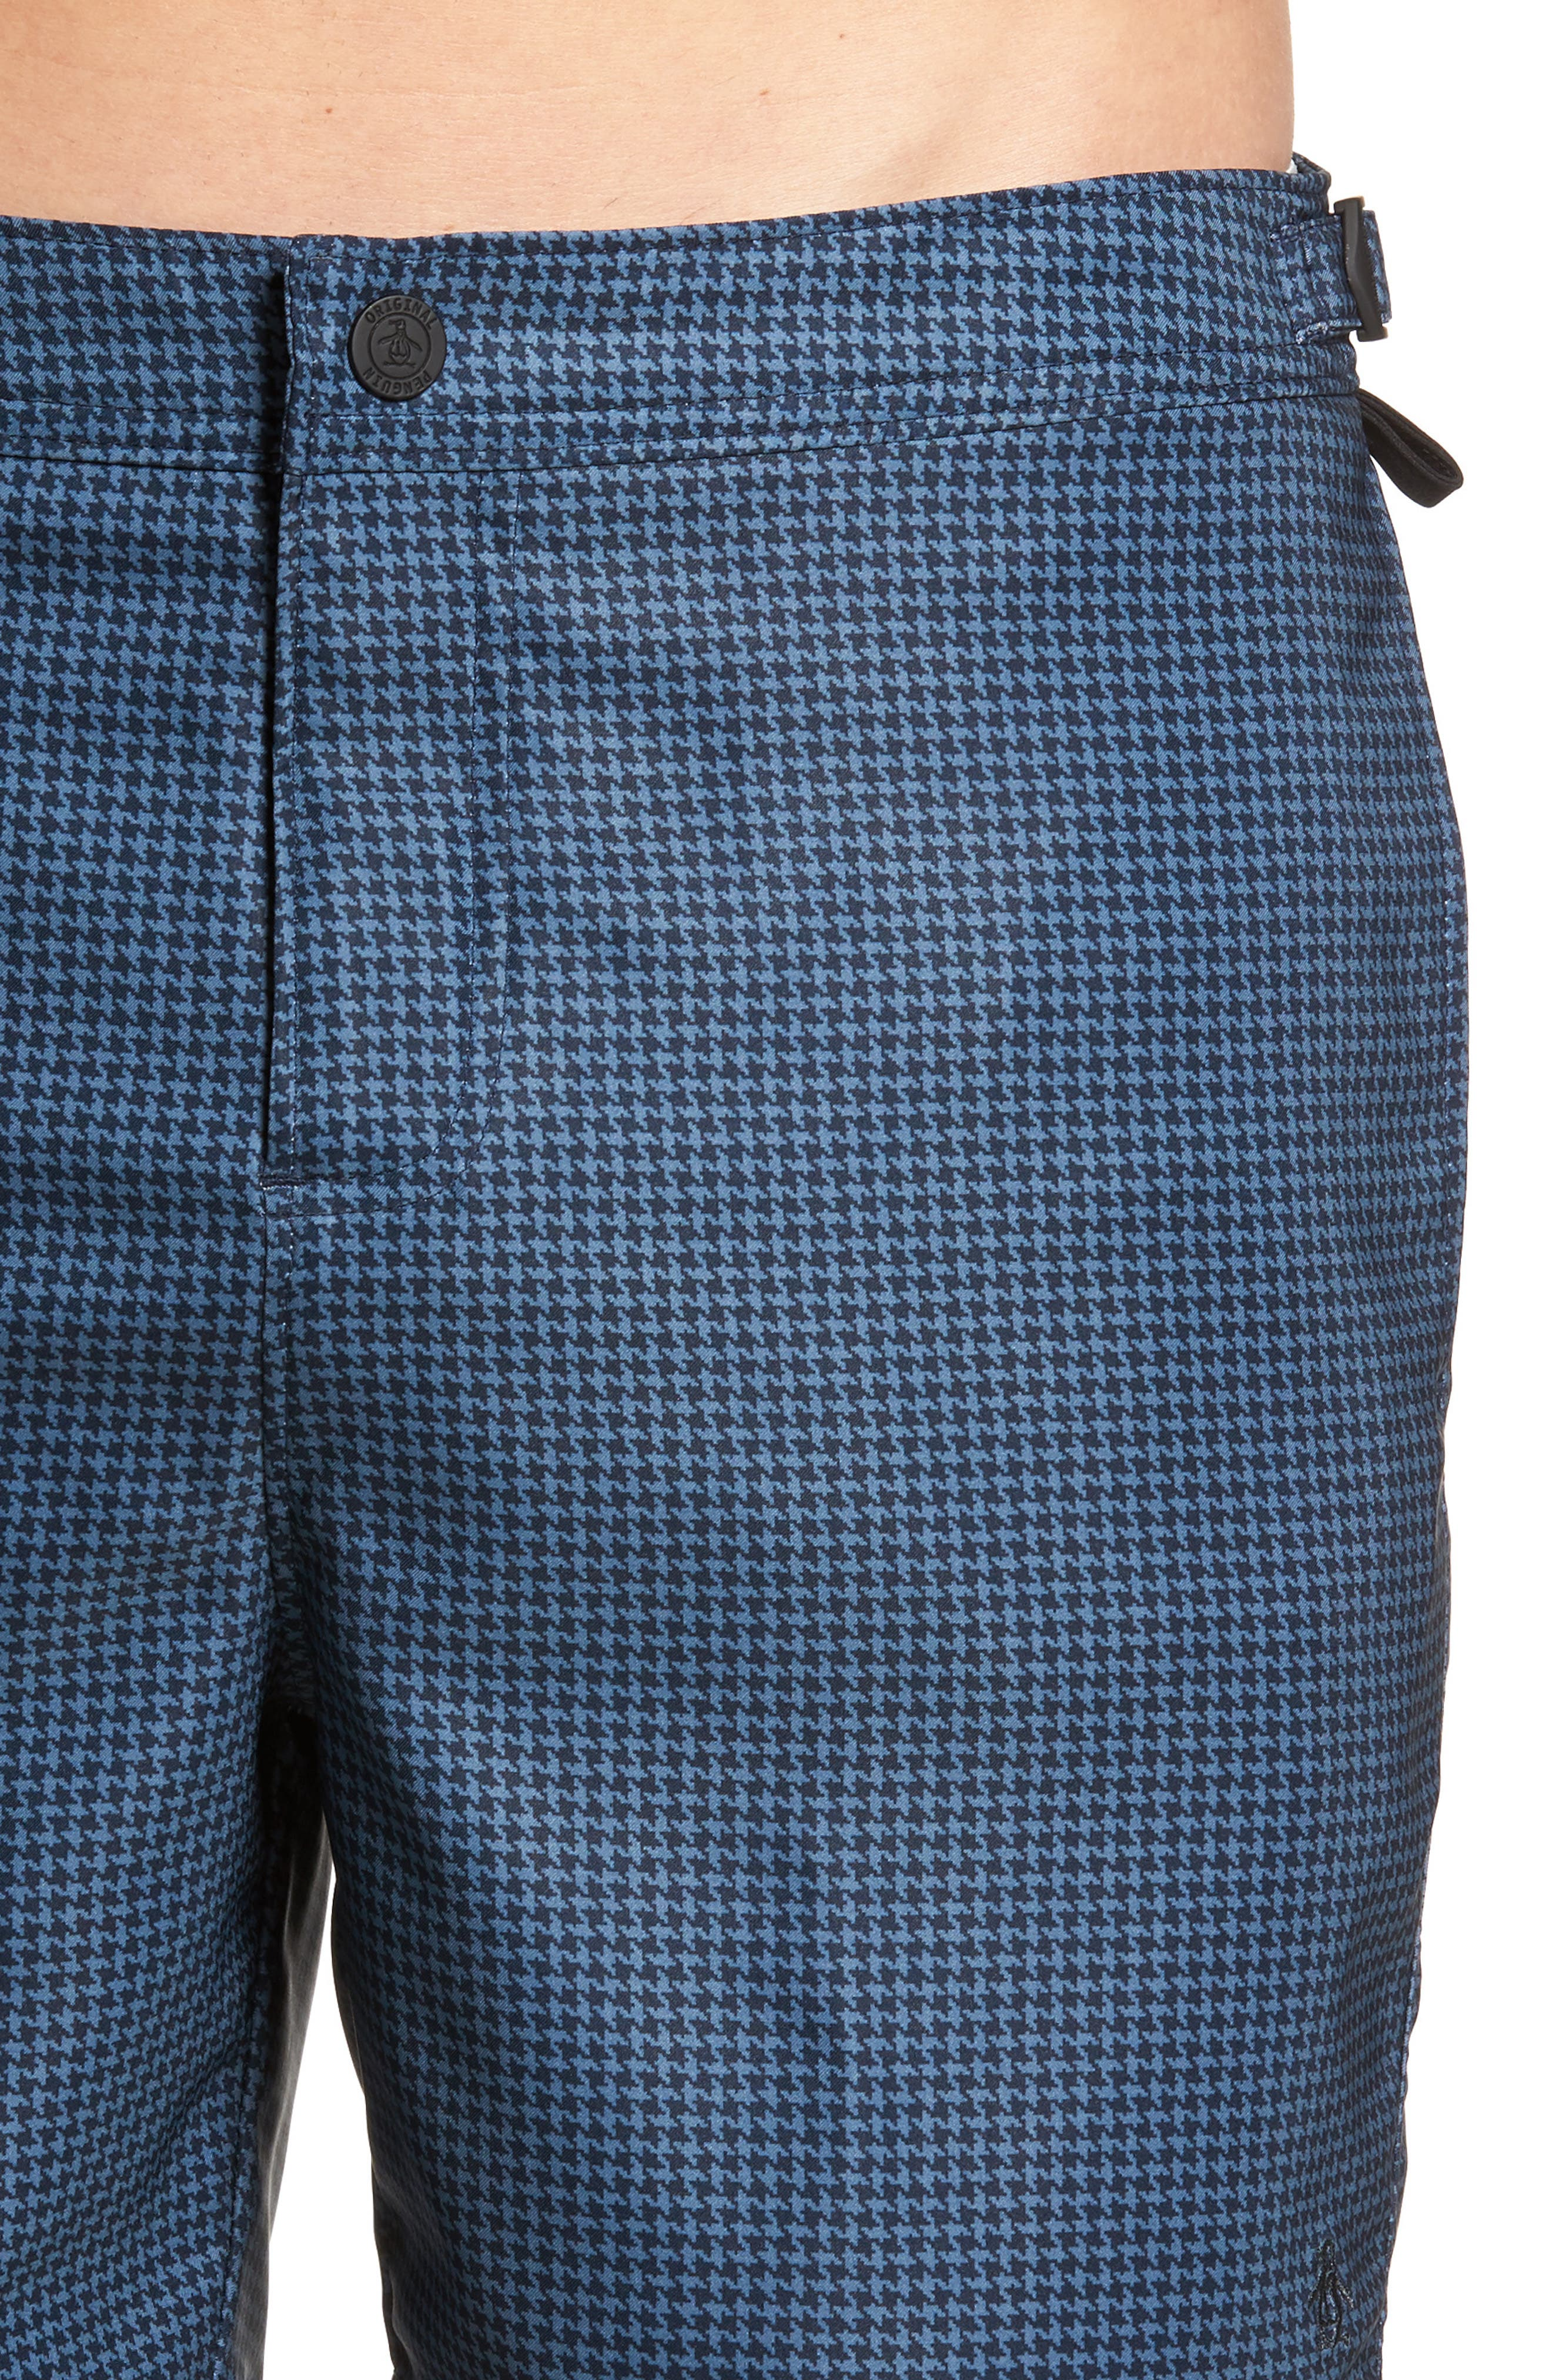 Houndstooth Stretch Volley Board Shorts,                             Alternate thumbnail 4, color,                             Dark Sapphire